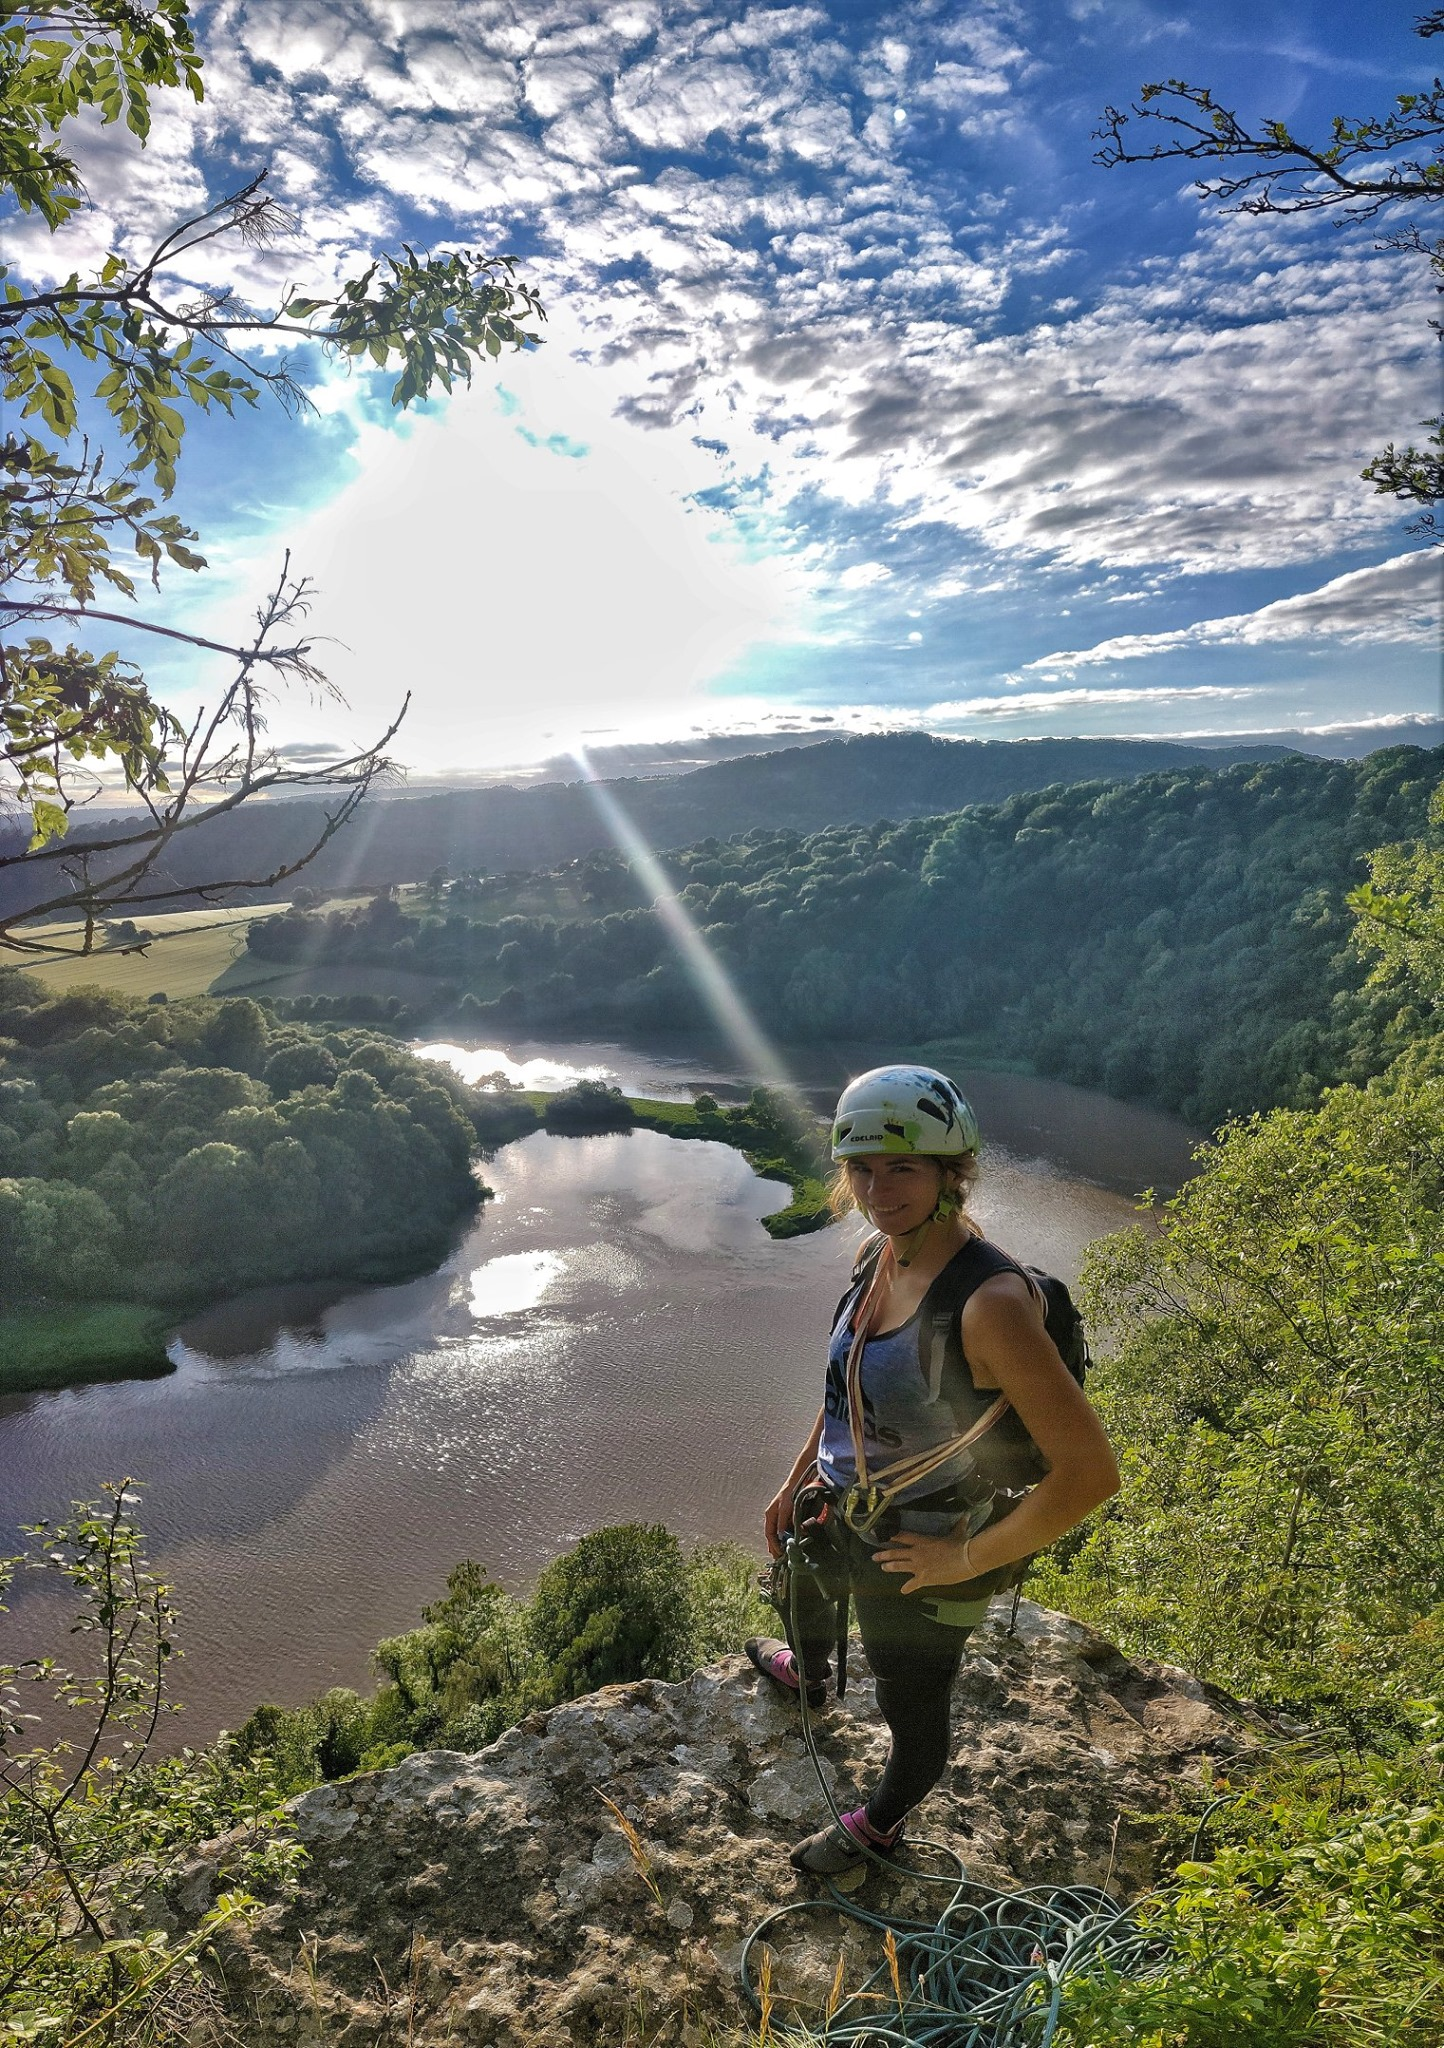 Rock climbing in the Wye Valley